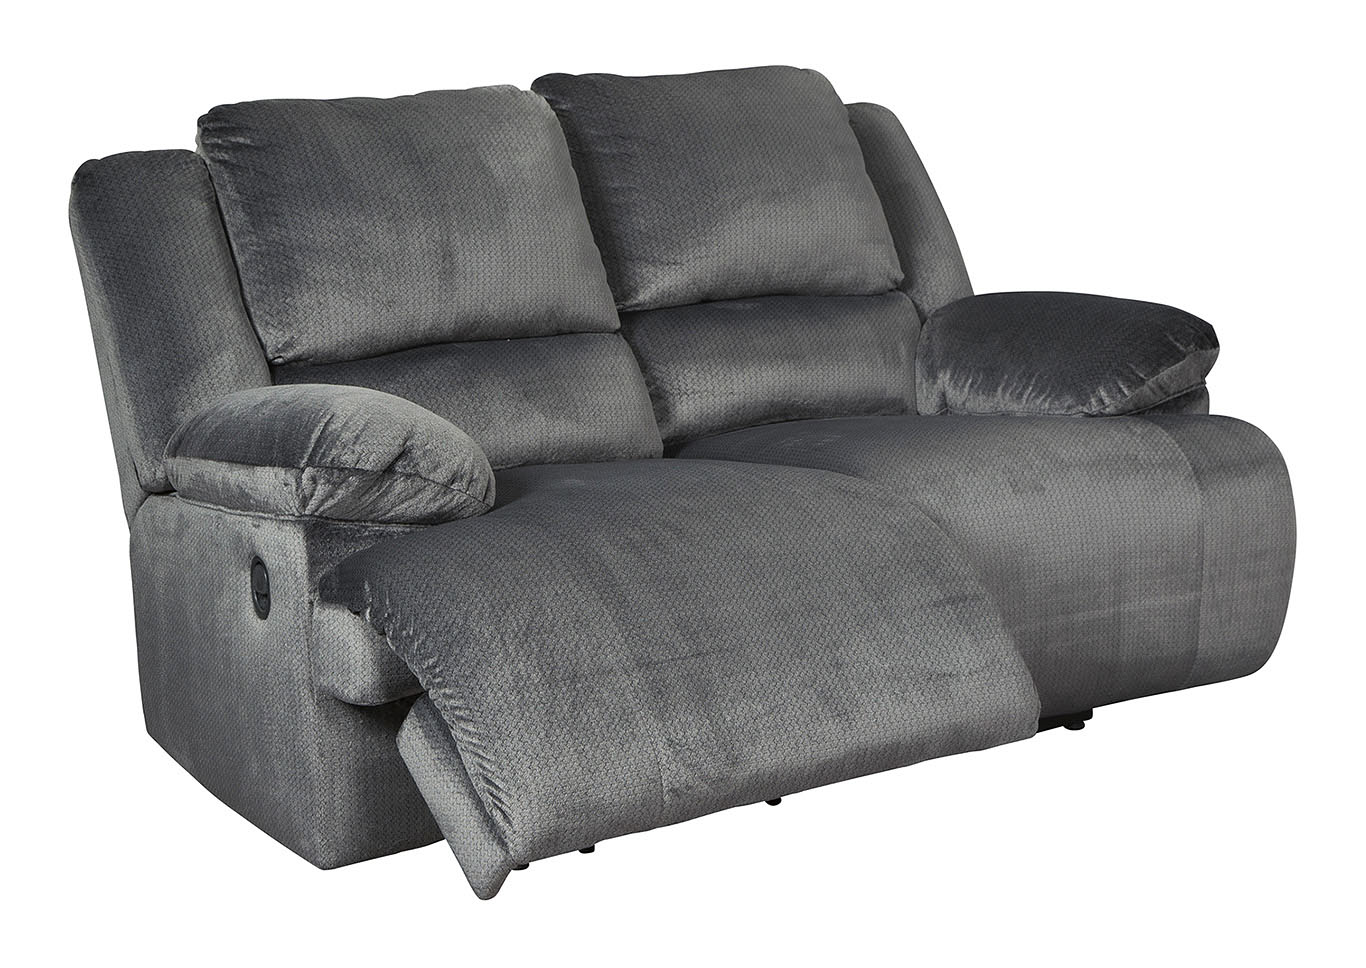 Clonmel Charcoal Power Reclining Loveseat,Signature Design By Ashley